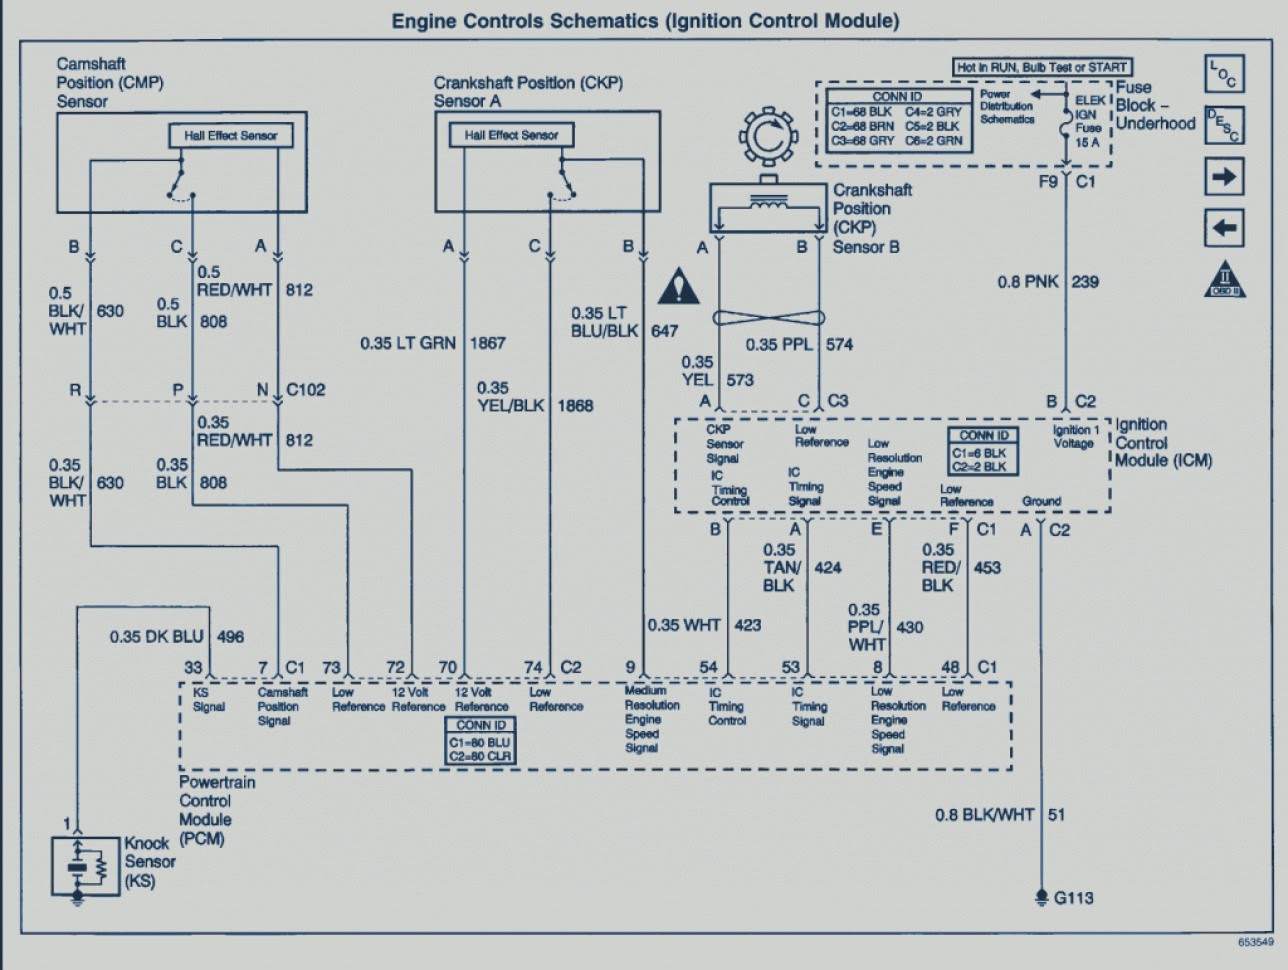 2006 Pontiac Grand Am Engine Diagram Wiring Diagram Trace Make Trace Make Cfcarsnoleggio It